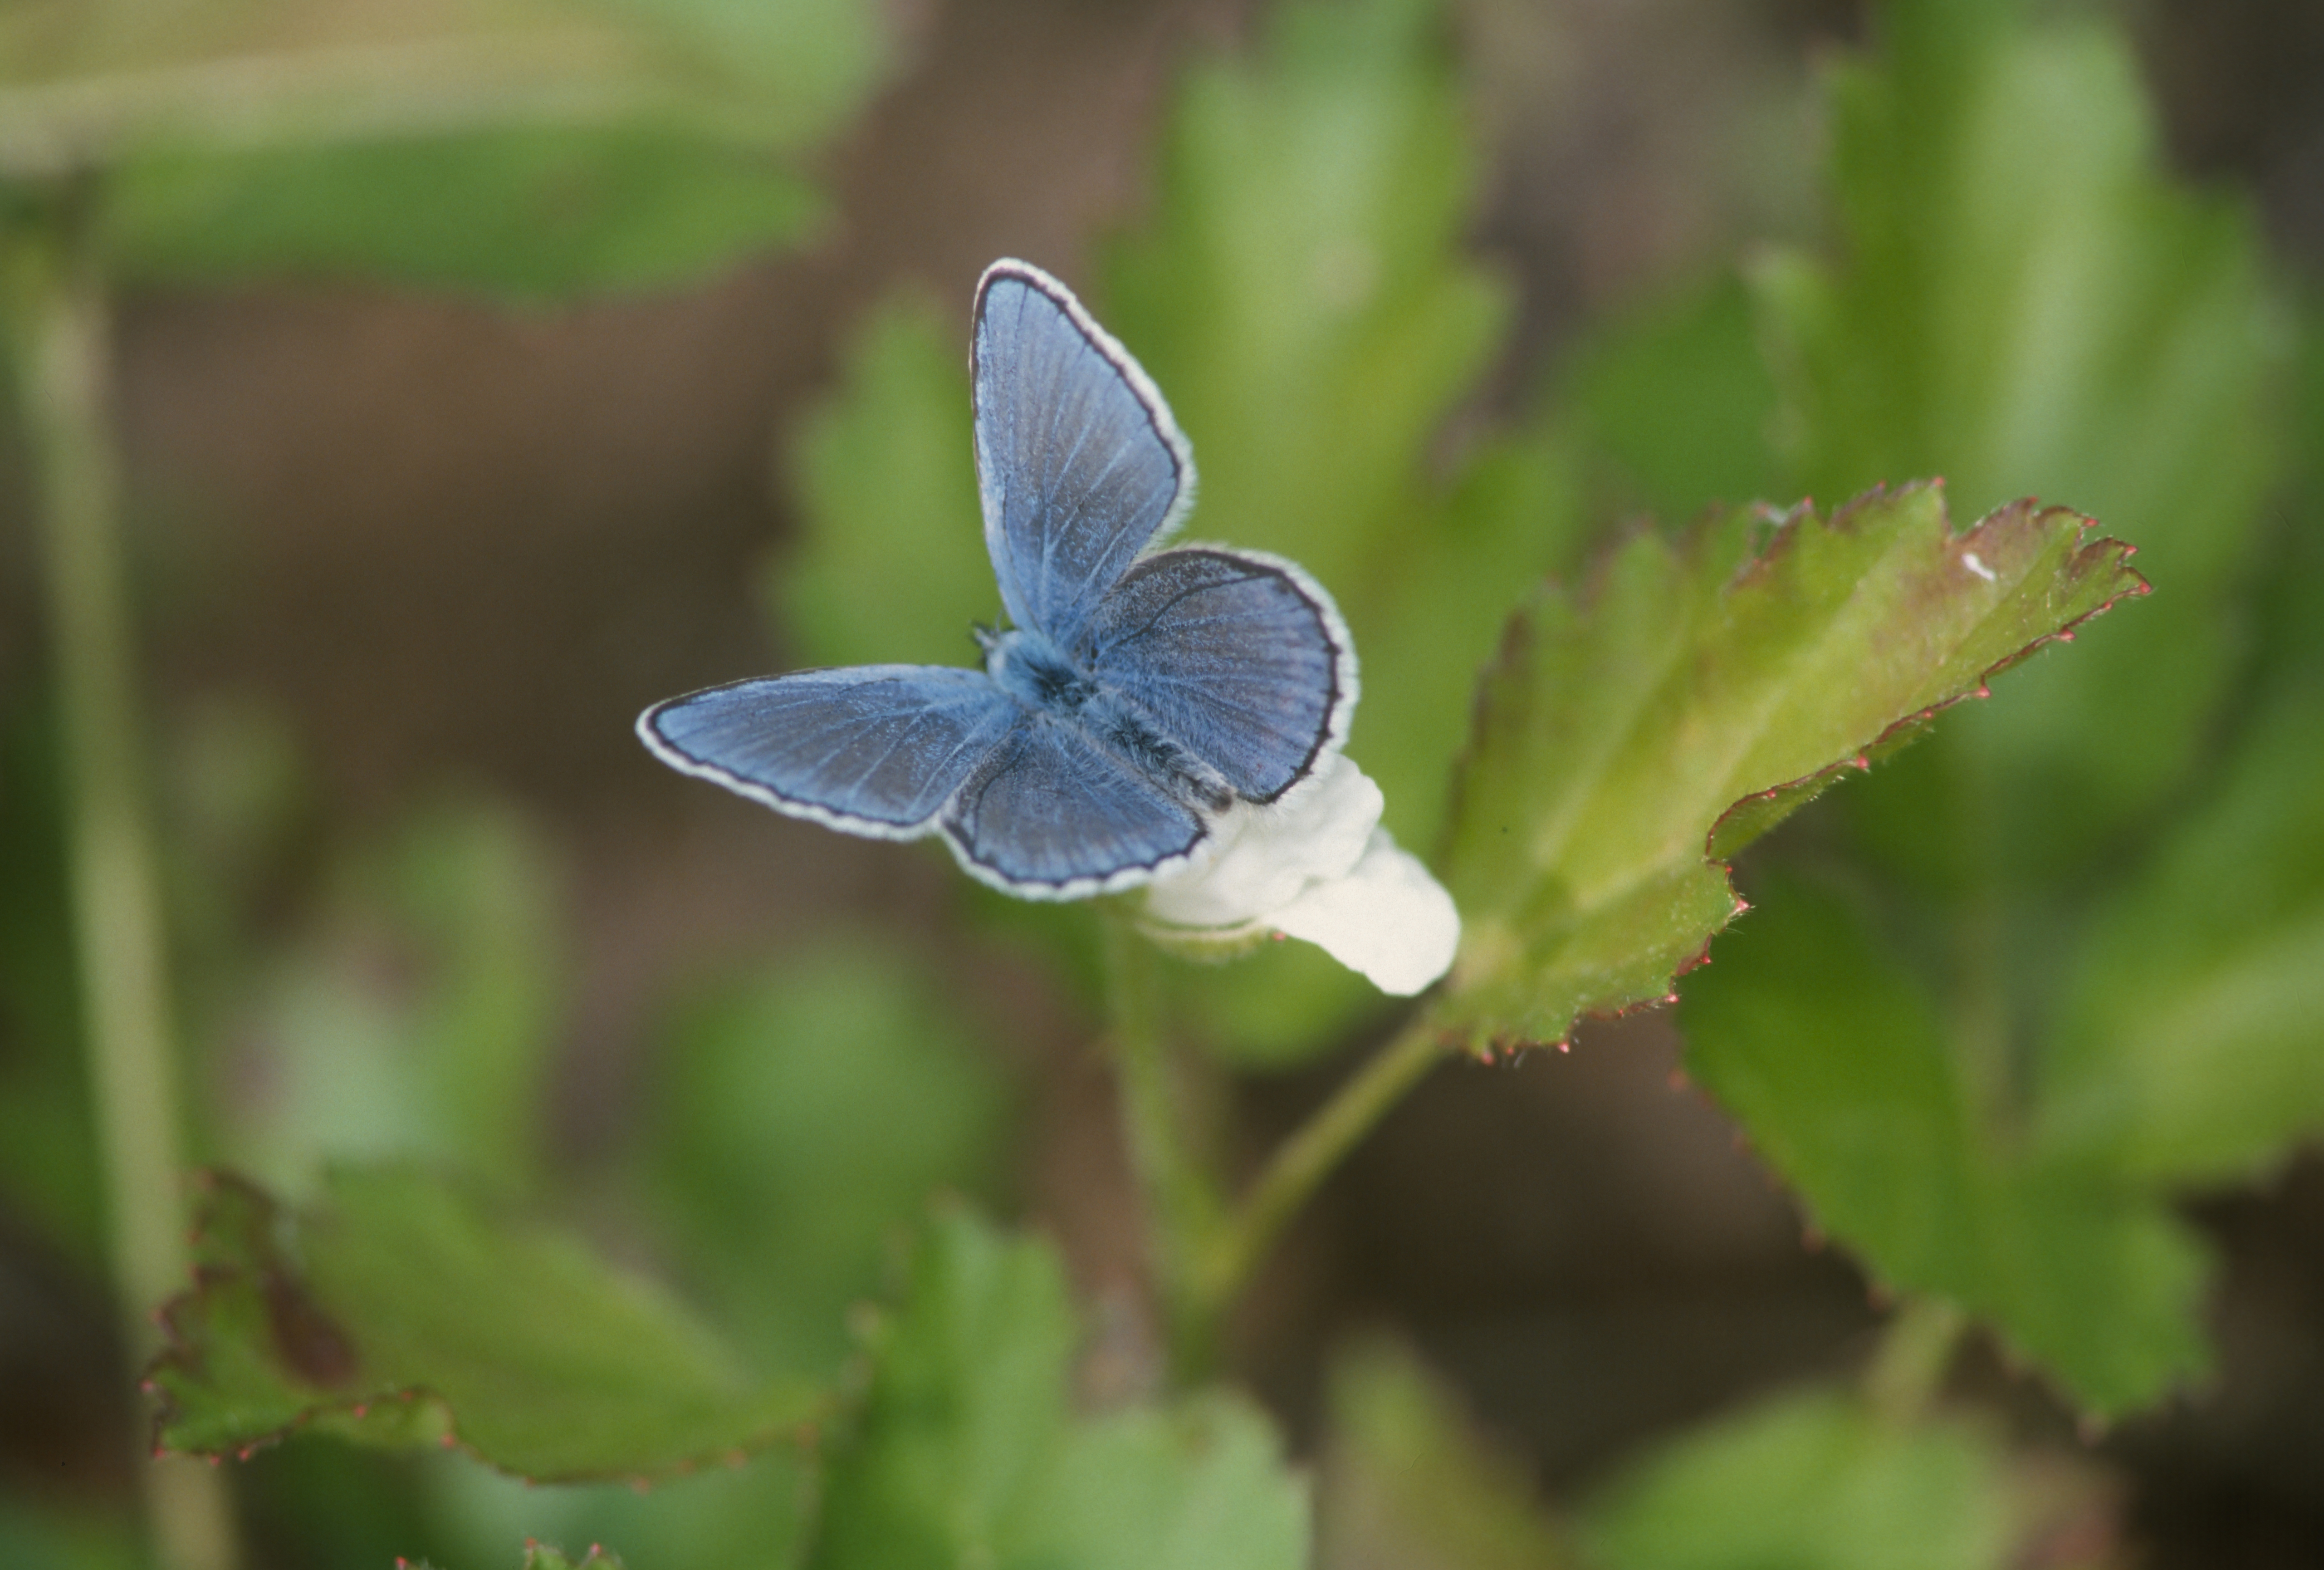 A blue butterfly stands out among green vegetation.